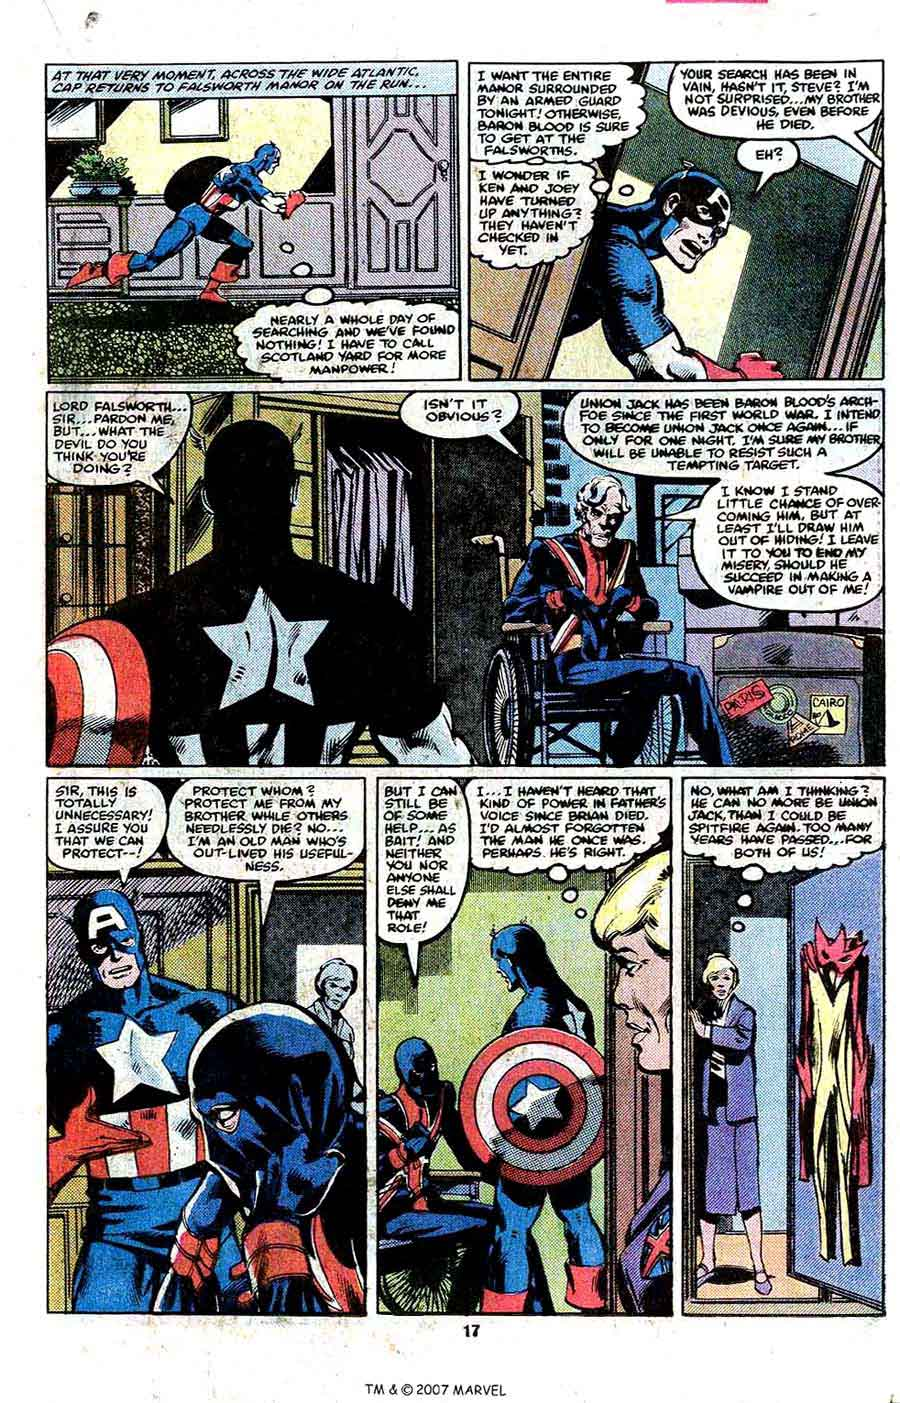 Captain America #254 marvel 1980s bronze age comic book page art by John Byrne